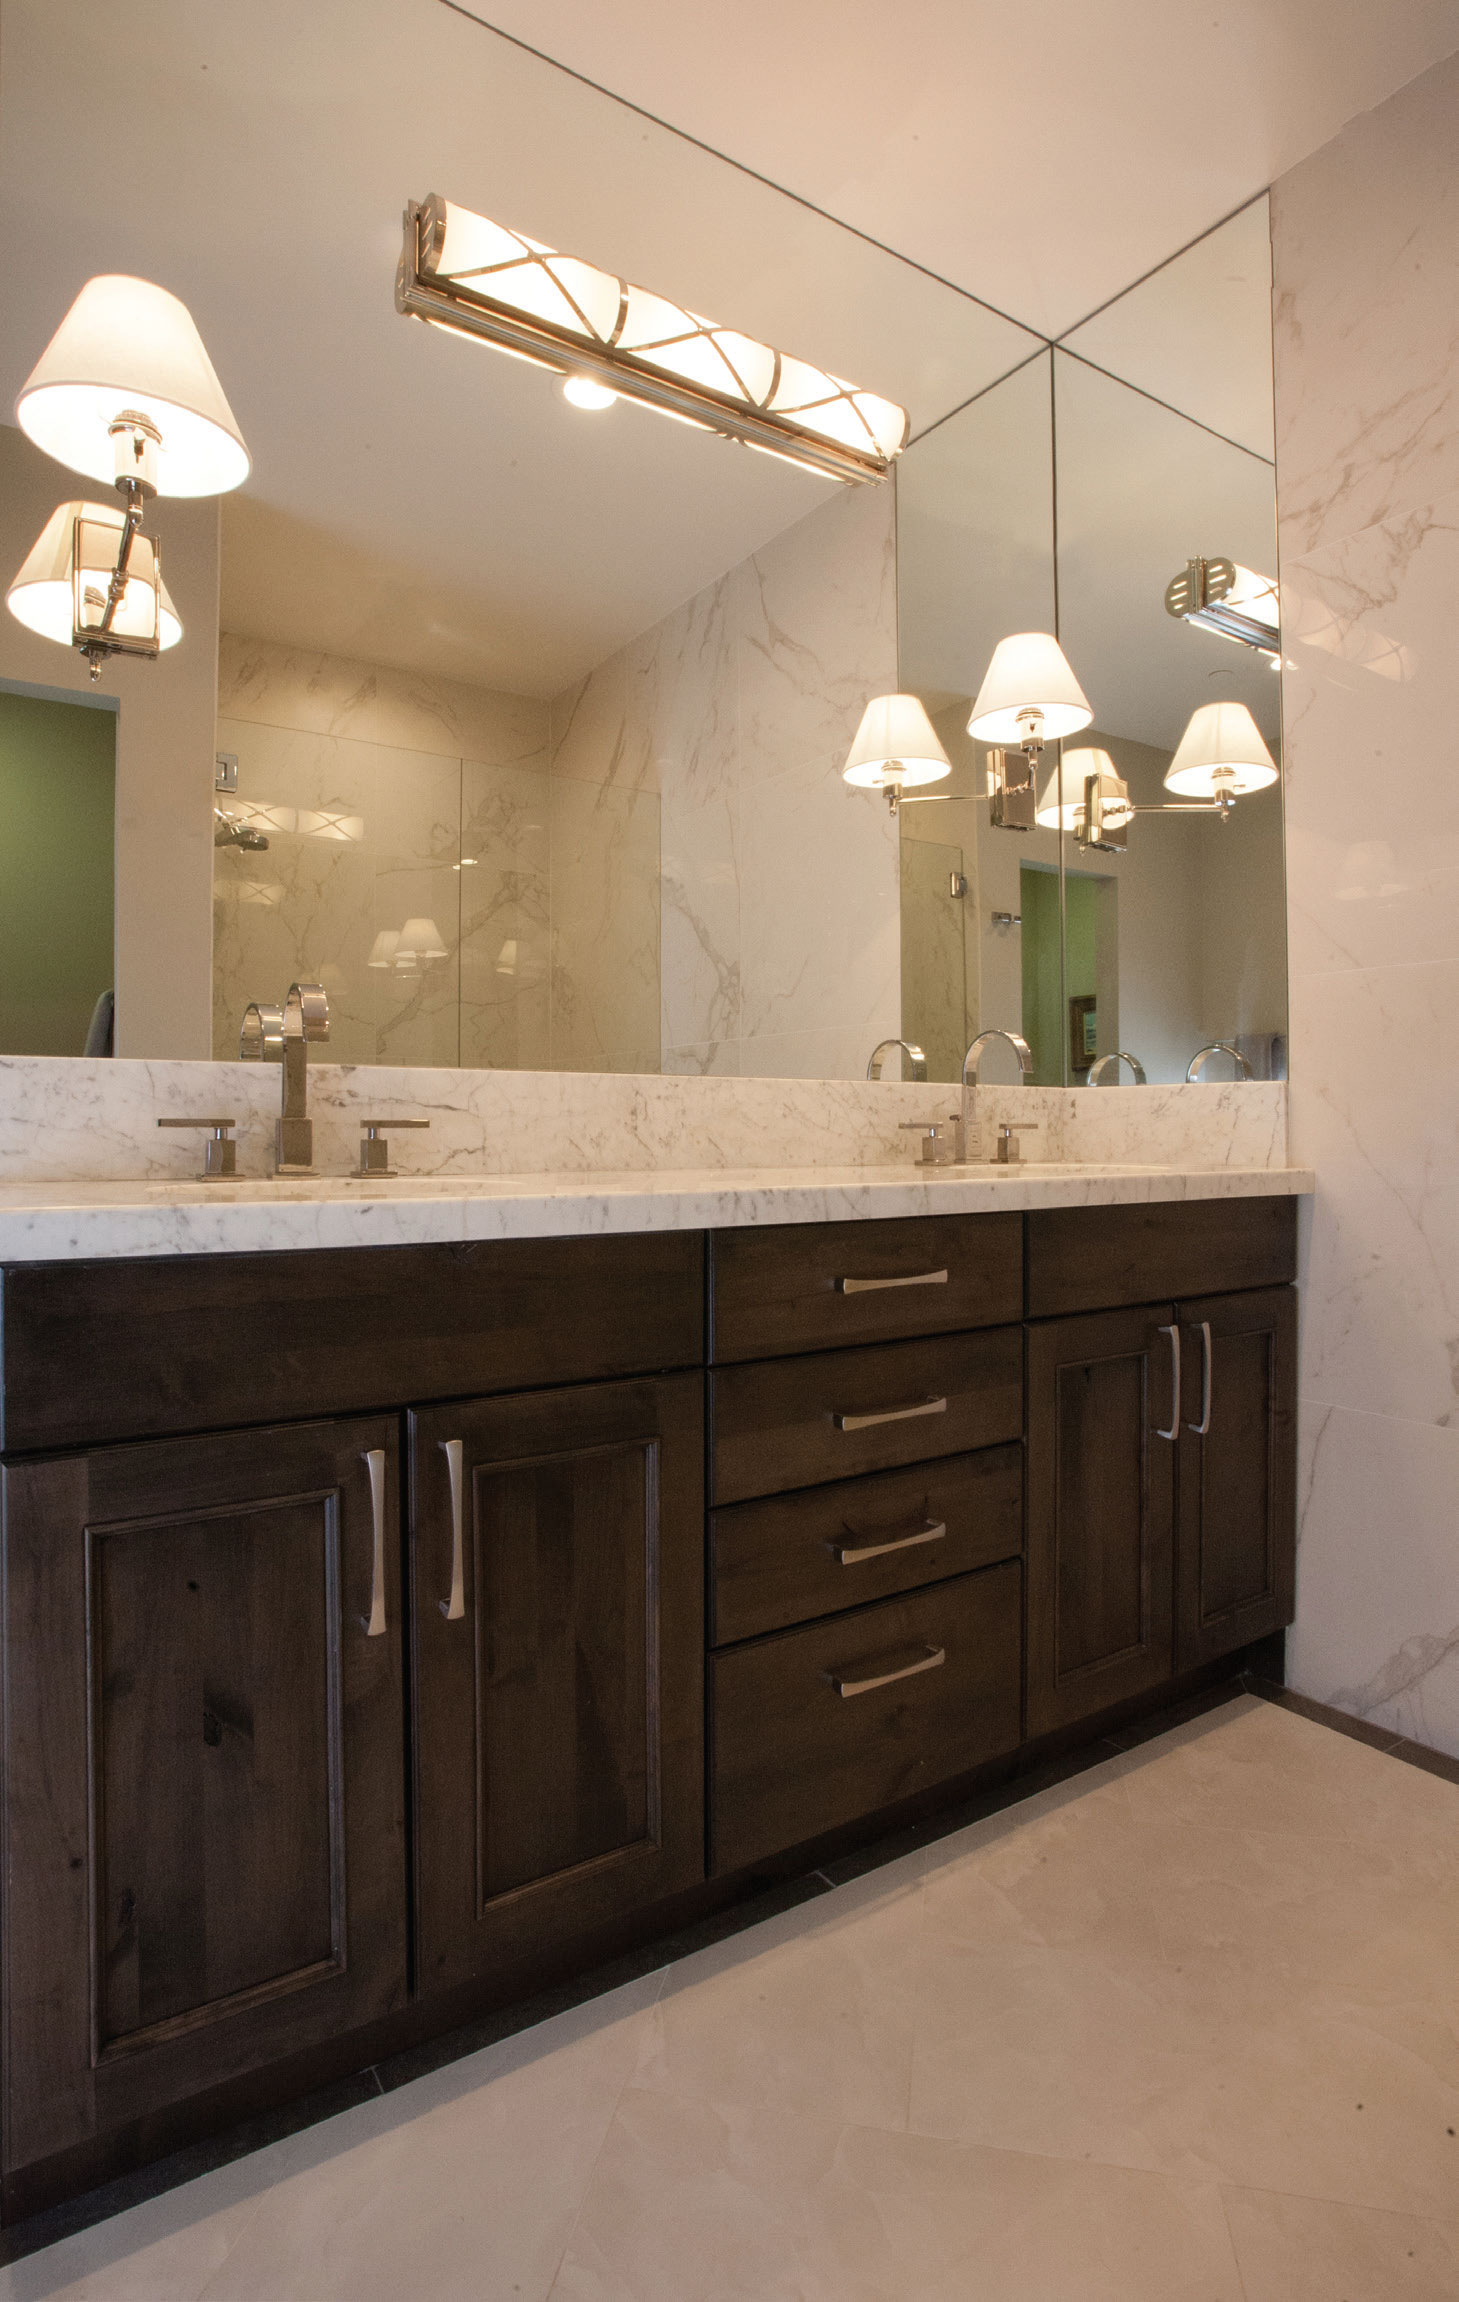 the loo western home journal an elegant bathroom by ketchum s design studio features a vanity with walnut stained cabinets pental calacatta extra tile carrara countertop